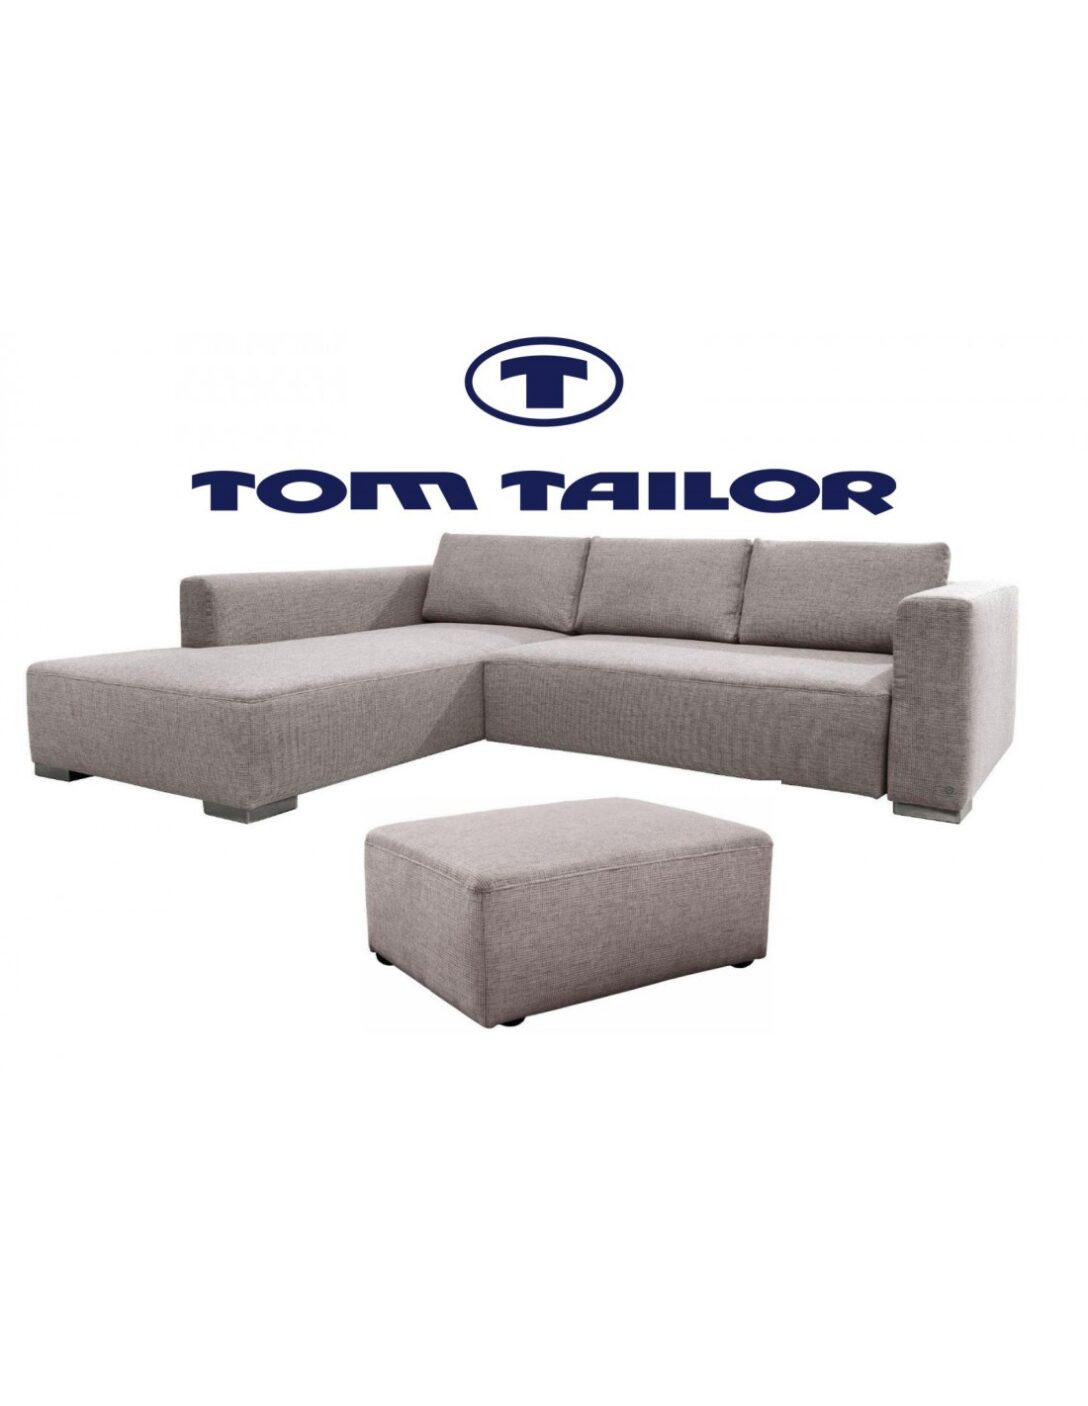 Large Size of Tom Tailor Sofa Big Cube Nordic Pure Elements Style Heaven Casual Colors Chic Ecksofa Xl Mit Hocker Inhofer Sitzhöhe 55 Cm Franz Fertig Rattan Garten 2er Grau Sofa Tom Tailor Sofa